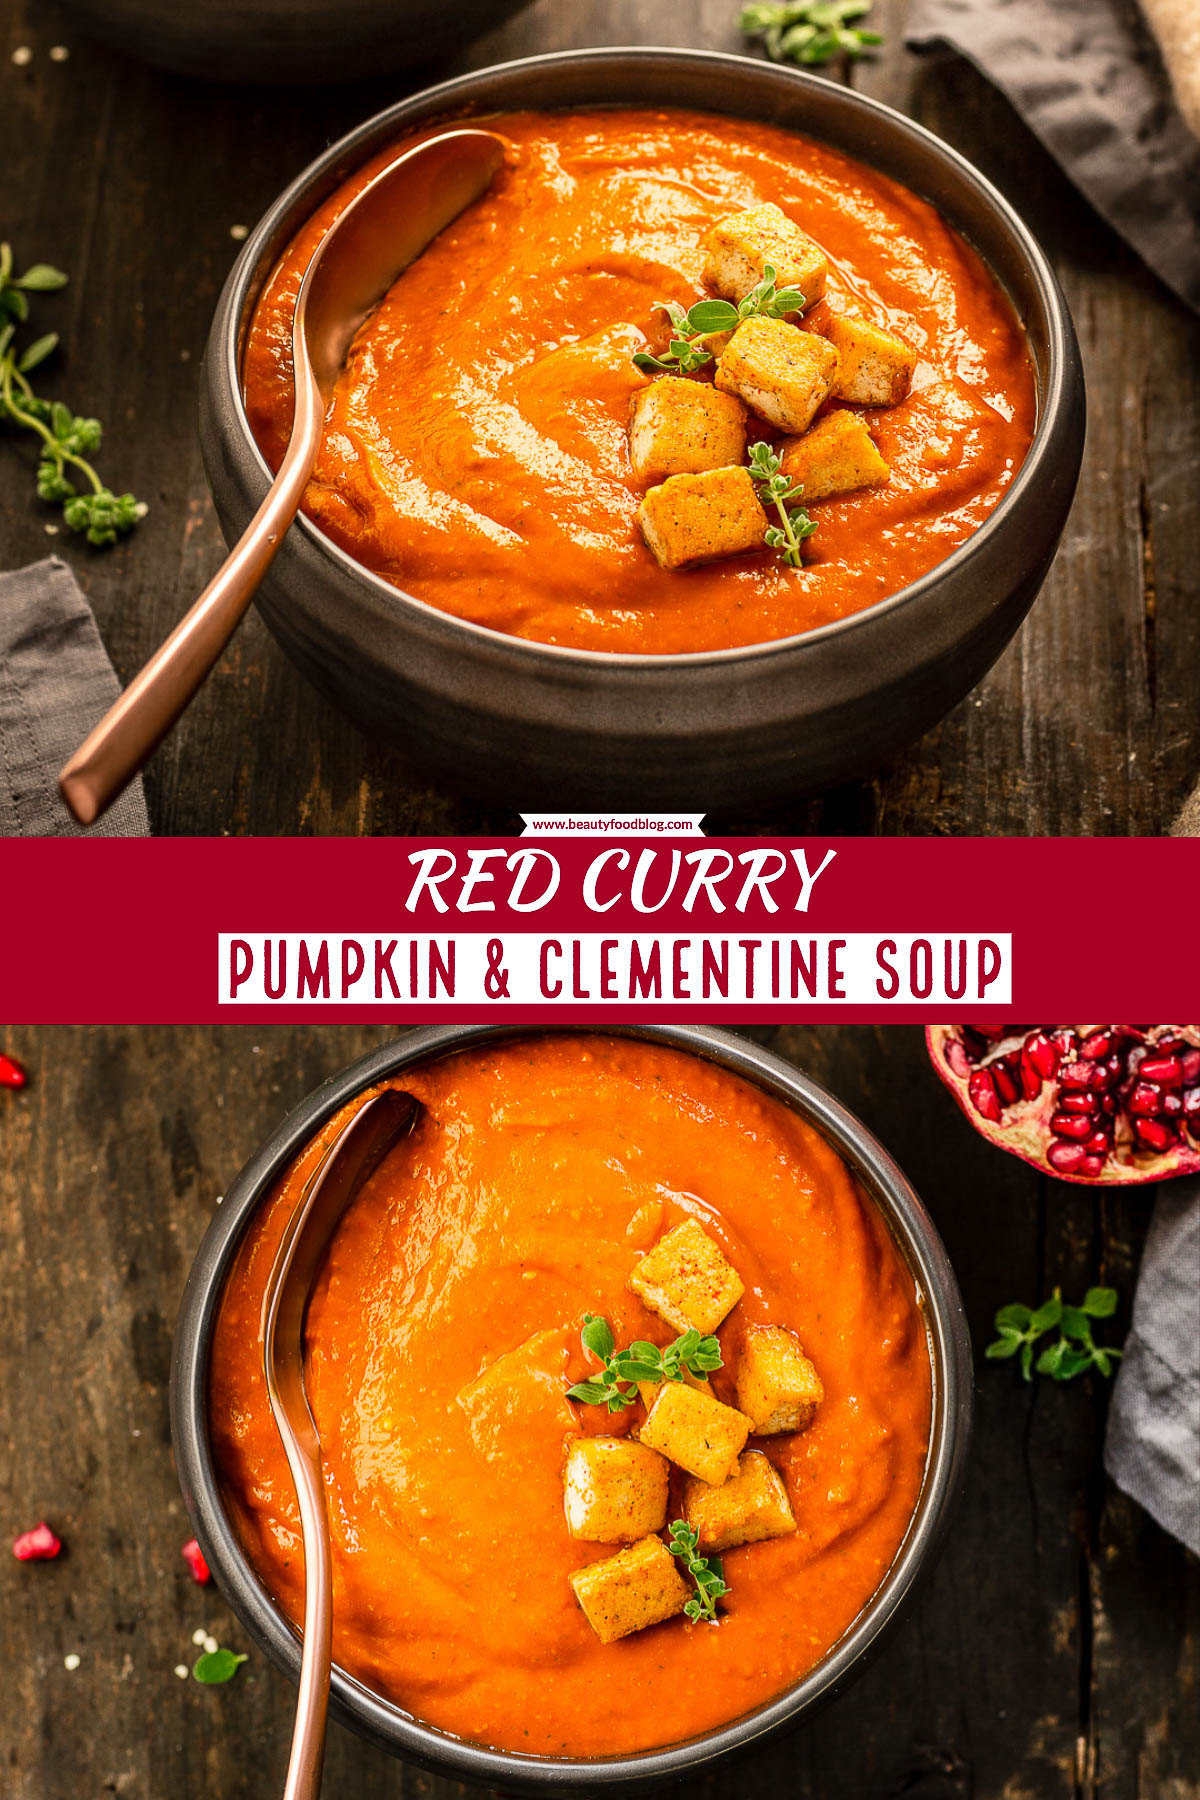 vegan creamy RED CURRY PUMPKIN SOUP 30 minutes autumn comfort food gluten free | CREMA di ZUCCA al CURRY rosso e clementine light vegan con tofu di canapa